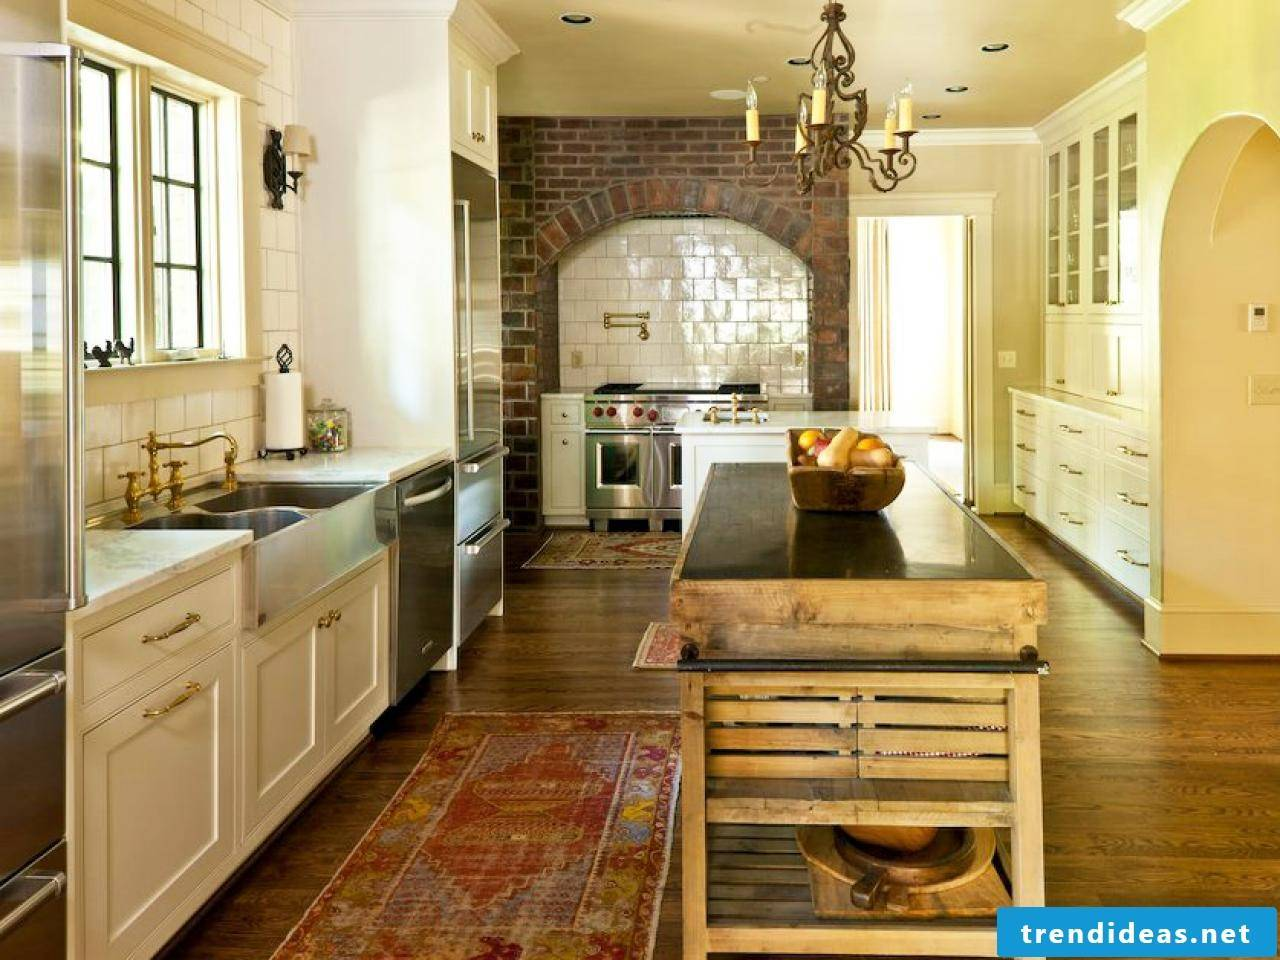 Delicate home décor for the provence kitchen